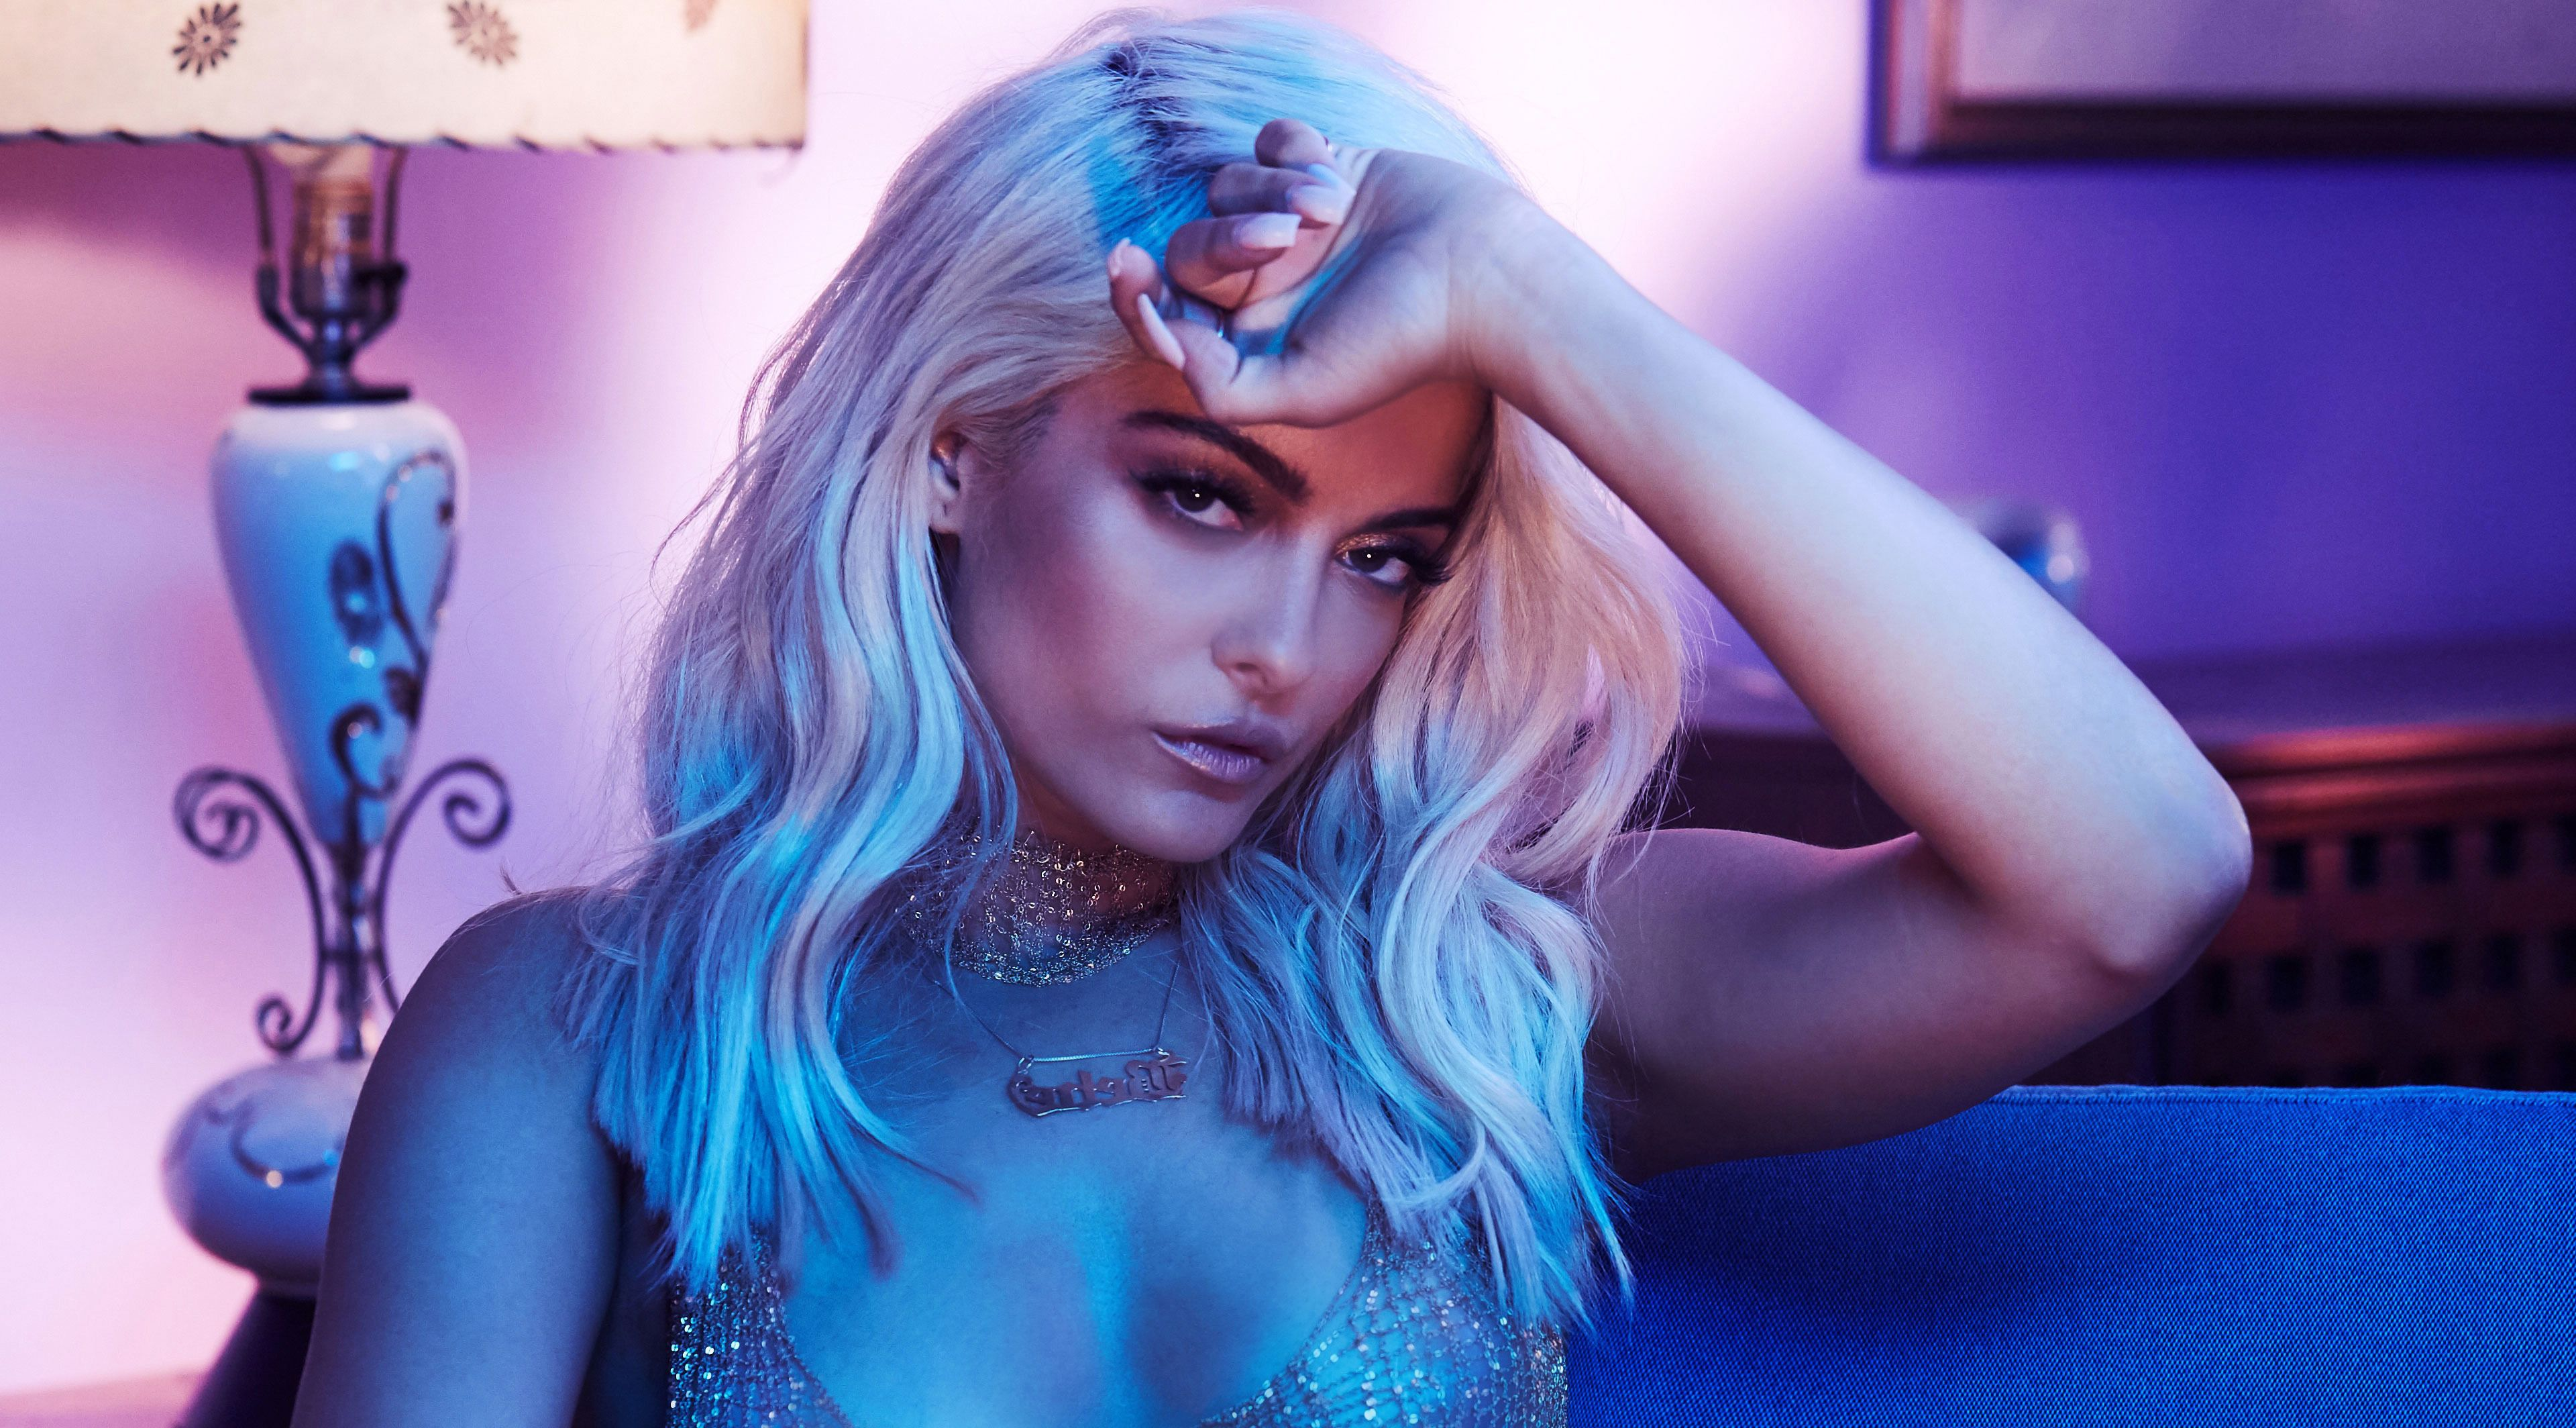 Bebe Rexha 4k Wallpaper Hd Https Hdwallpapersmafia Com Bebe Rexha 4k Wallpaper Hd We Ve Created A Great Topic For Bebe Rexha Fans You Can Find New Photos